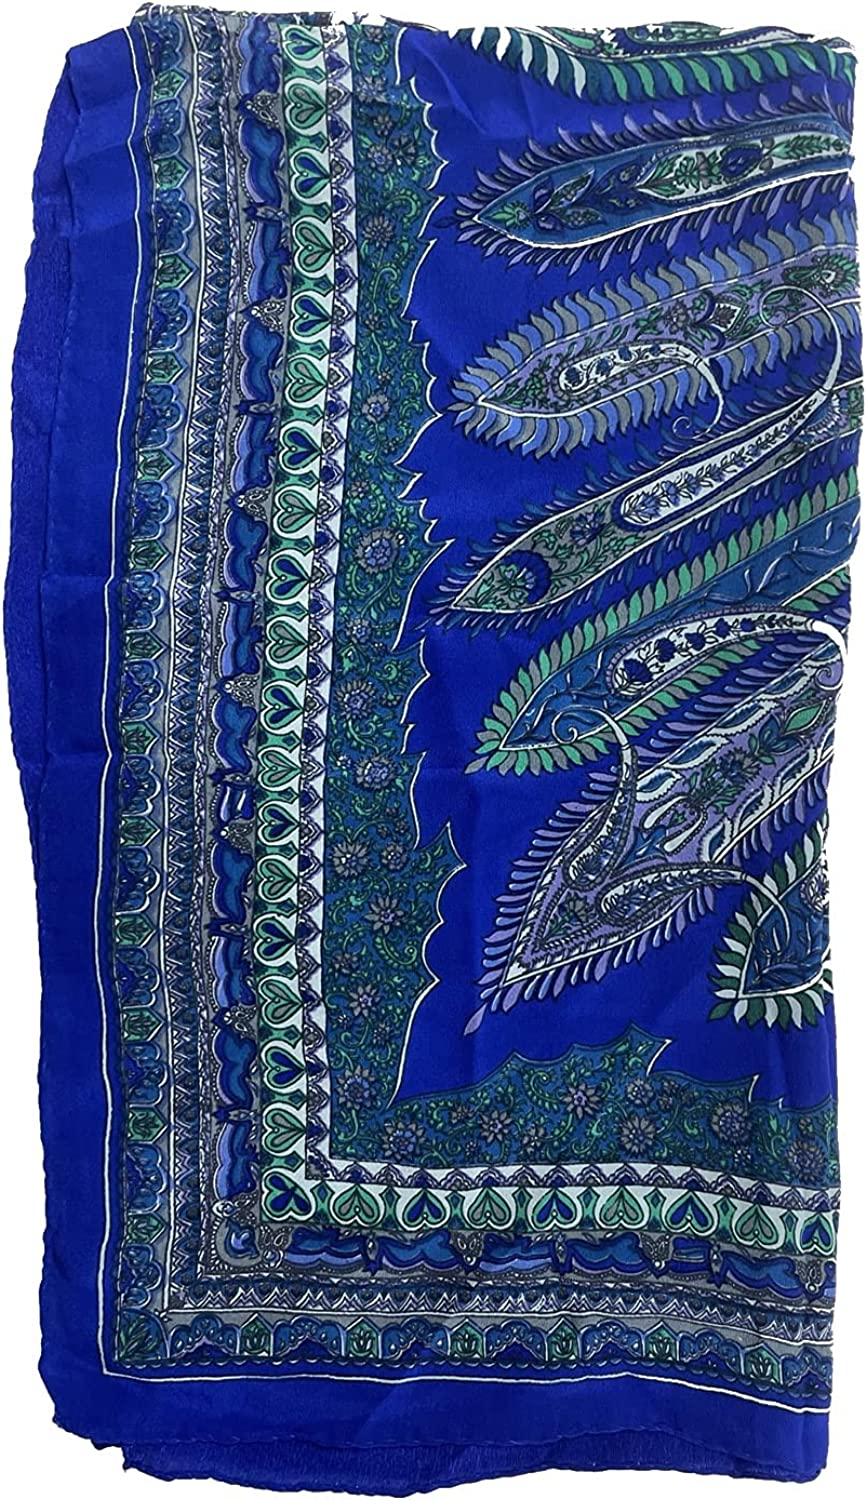 Silk Scarf With Crepe Print for Women Girls. and Max 57% OFF Max 42% OFF